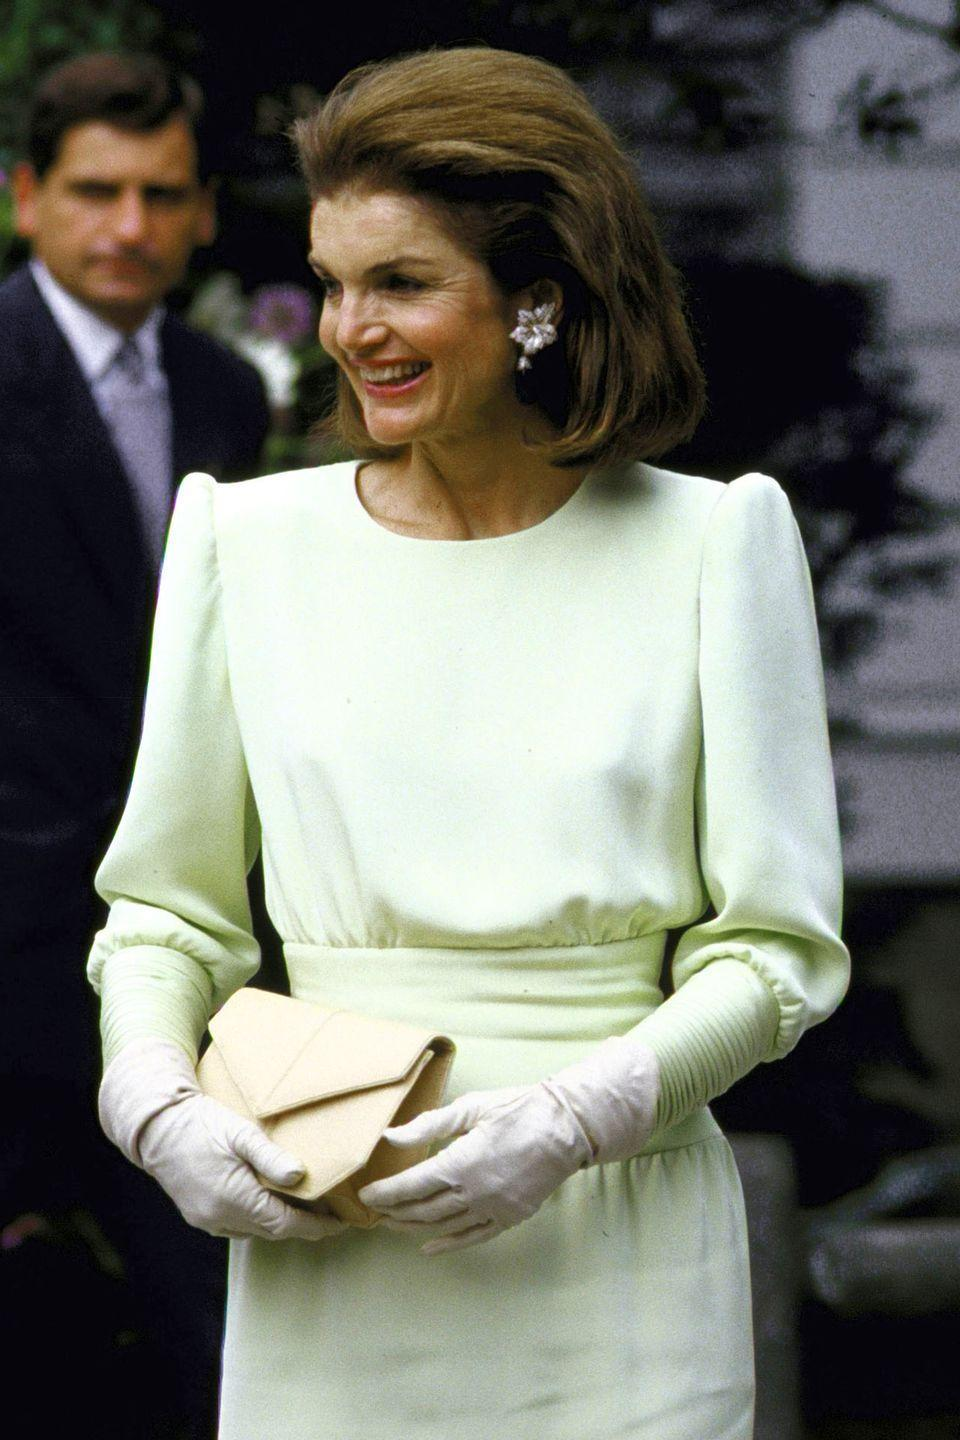 <p>Even in the sometimes stylistically fraught mid-1980s, Kennedy-Onassis keeps her composure in a bit of a bold shoulder without going too over-the-top. Statement earrings and gloves finish the look. </p>